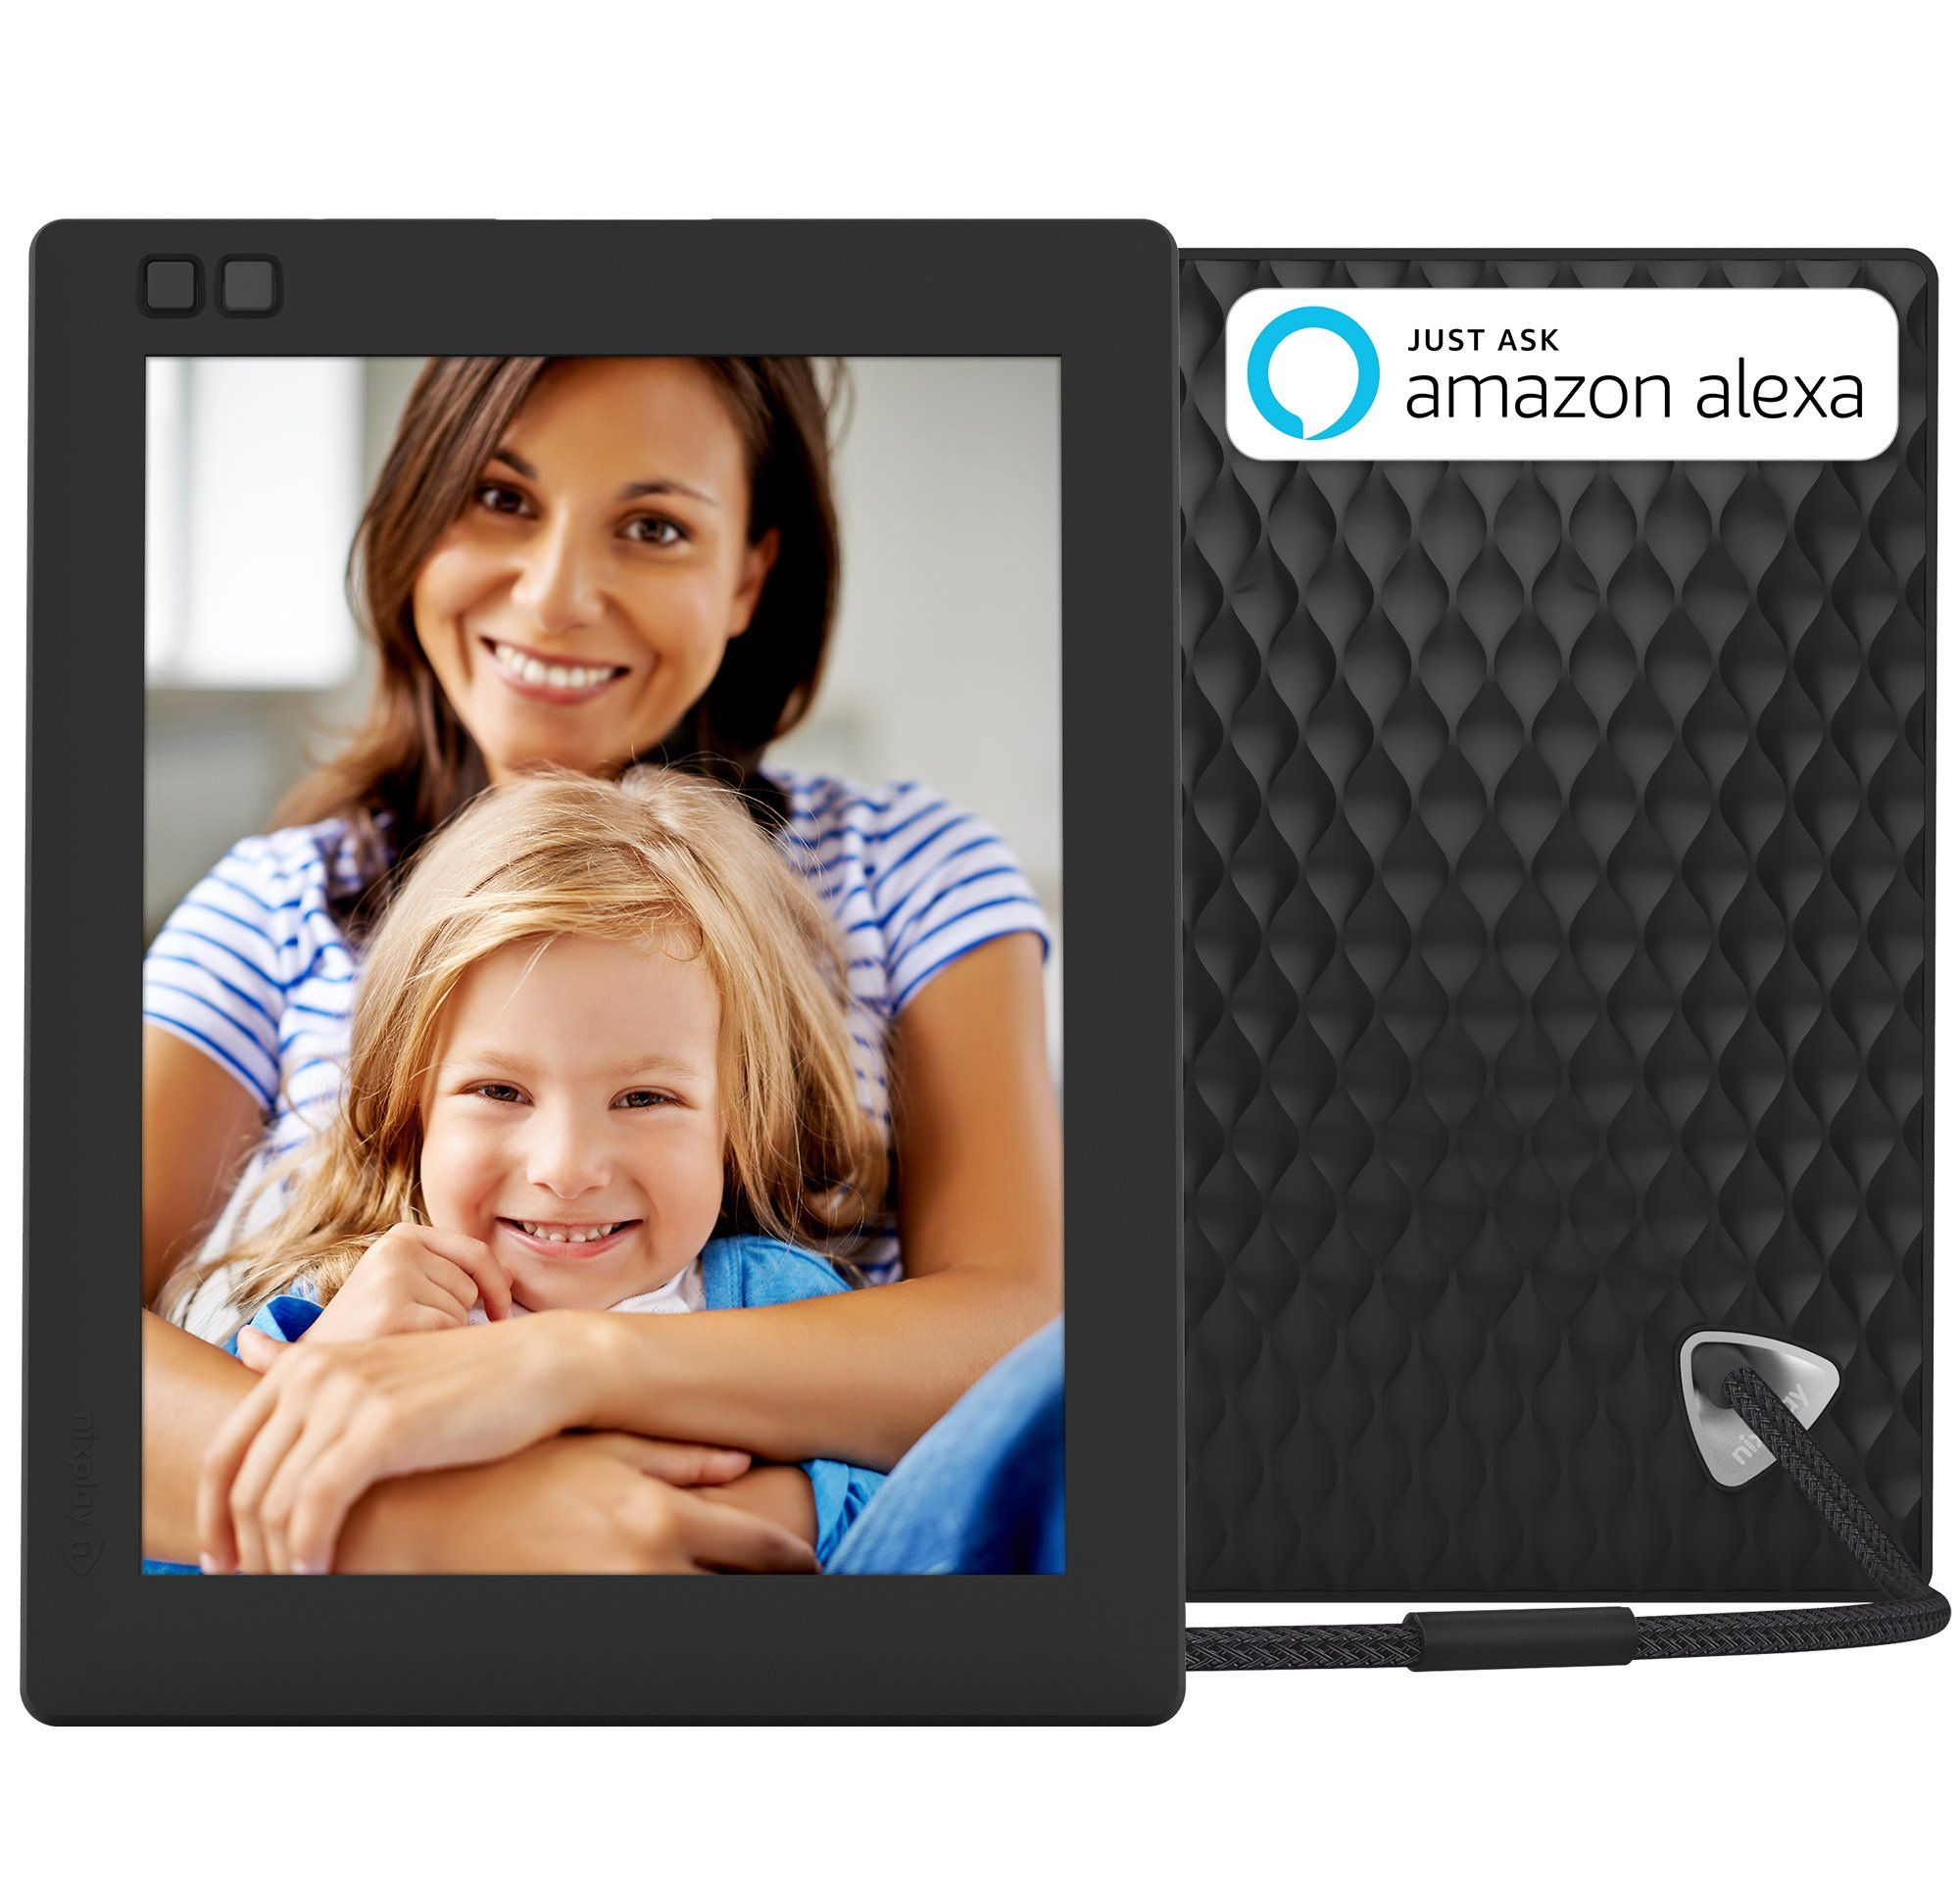 Nixplay Seed 8 Inch WiFi Cloud Digital Photo Frame with